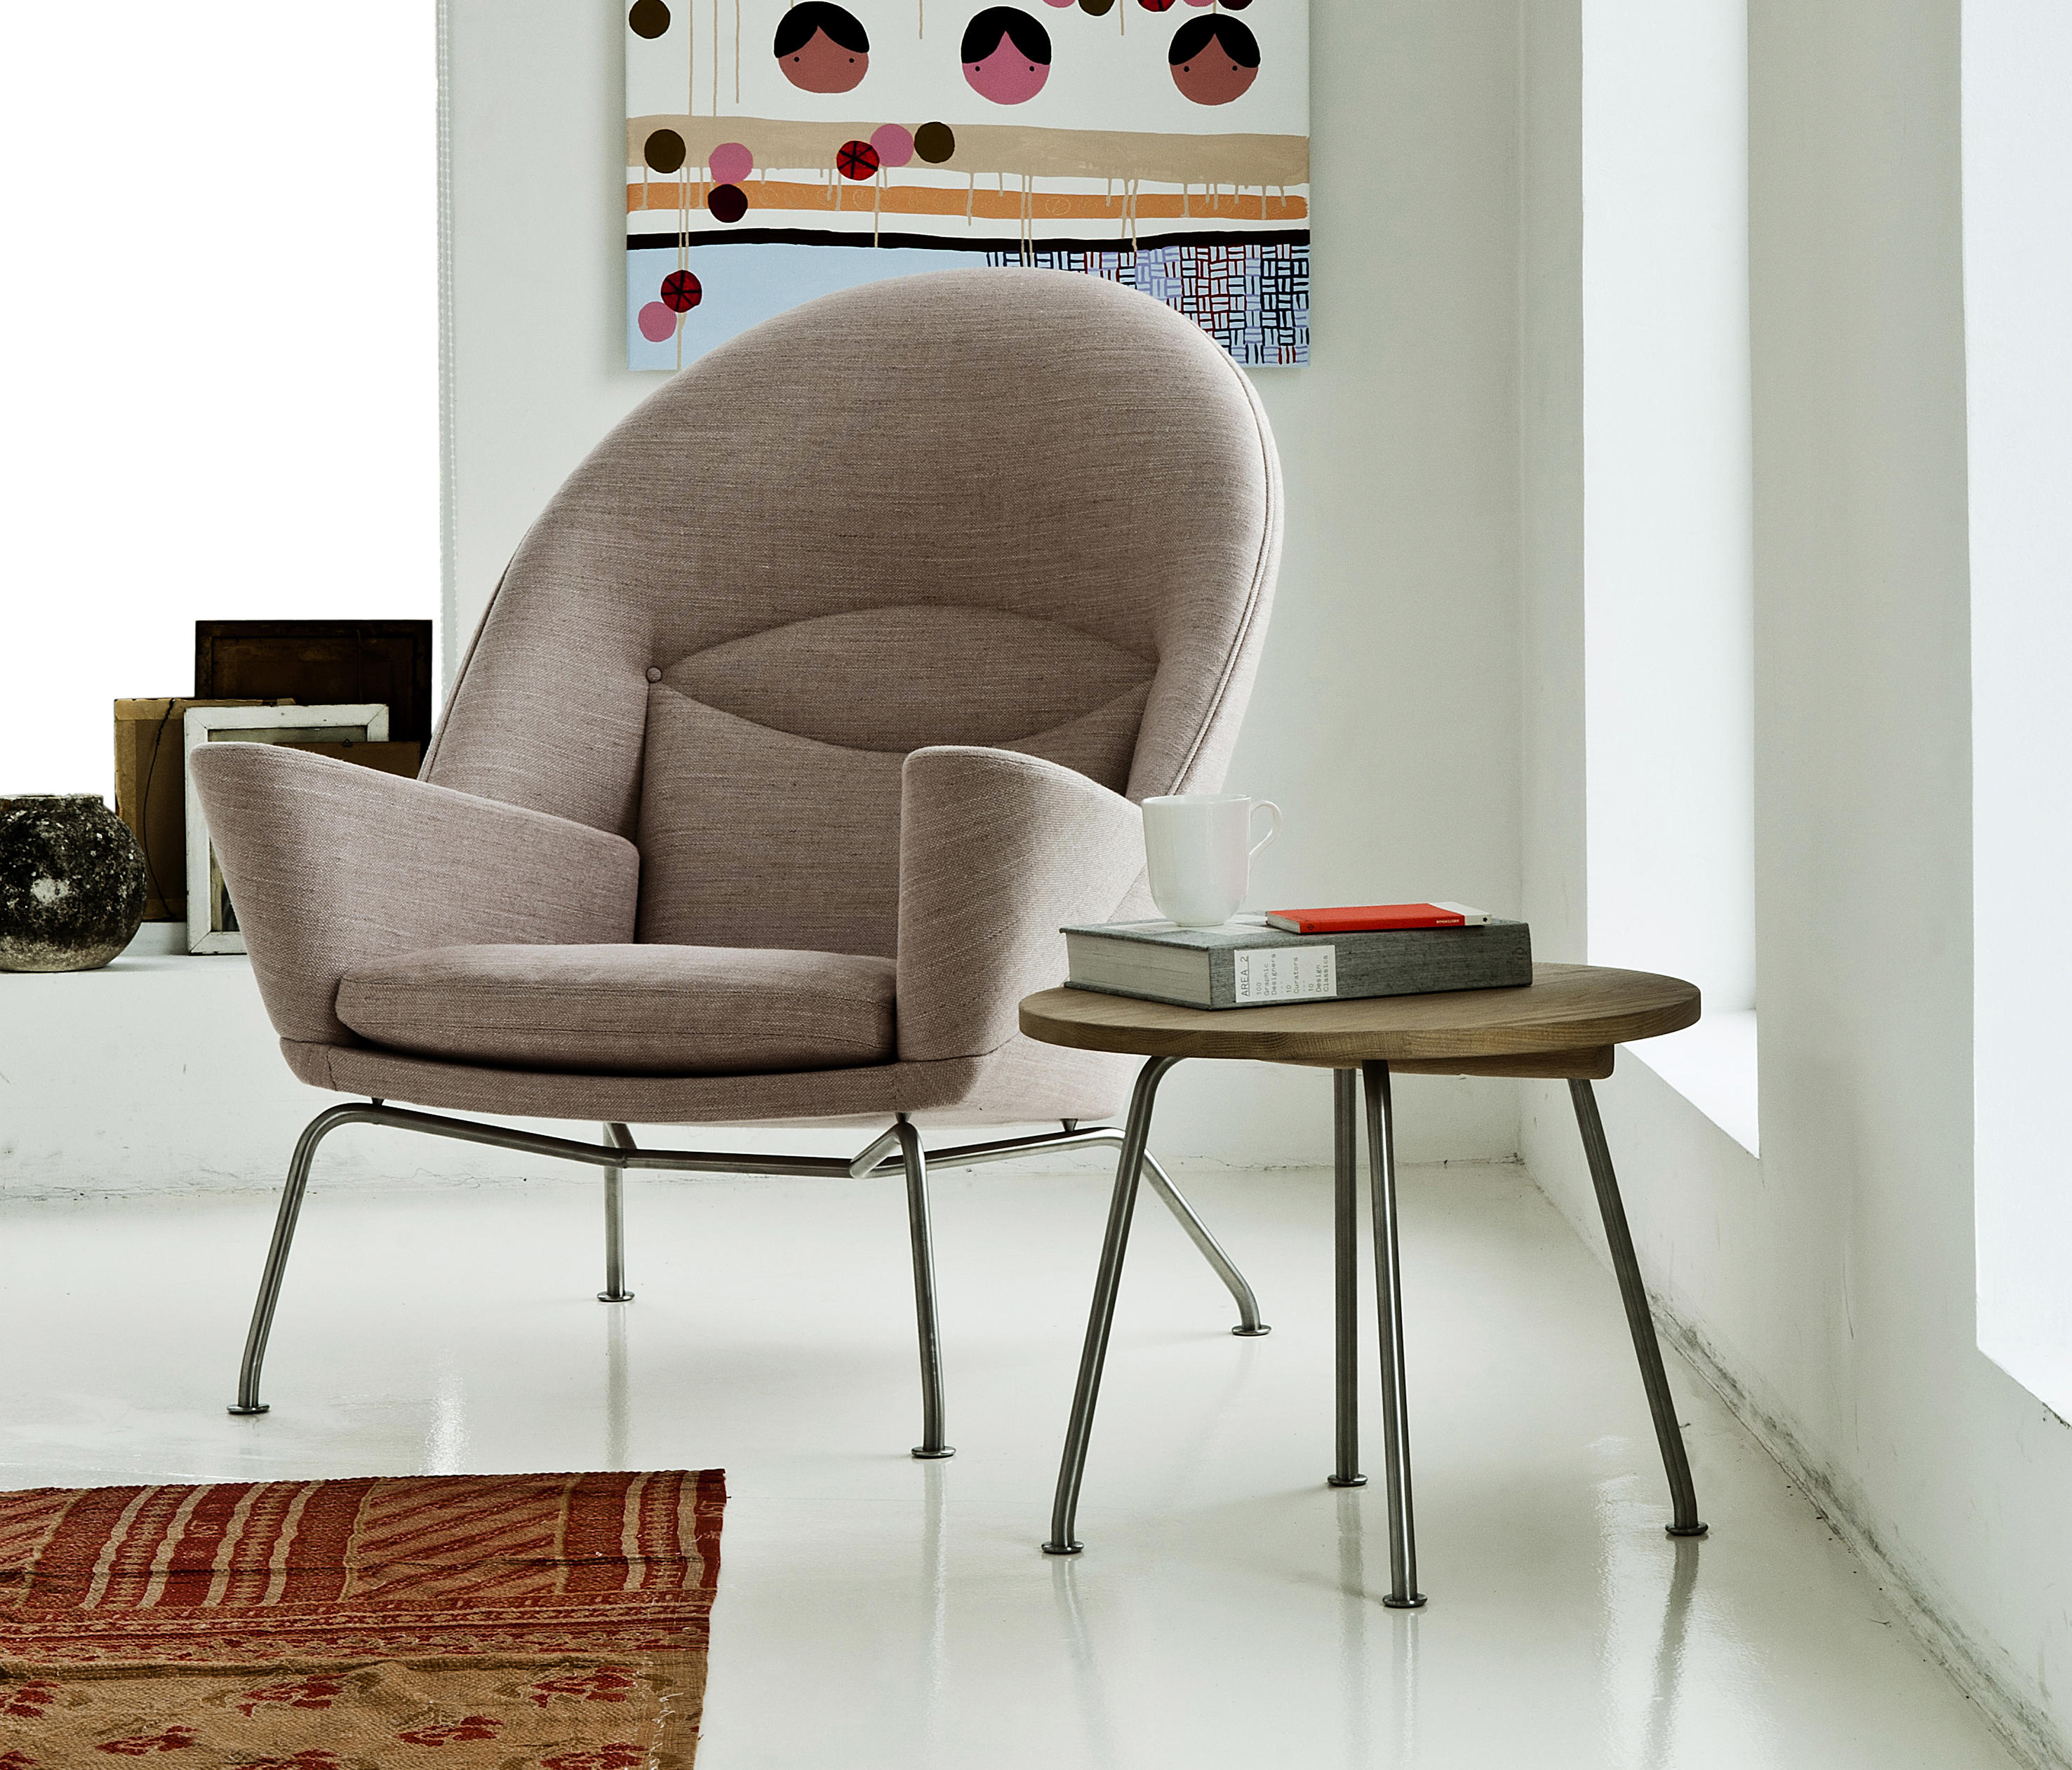 ch468 oculus chair lounge chairs from carl hansen s n architonic. Black Bedroom Furniture Sets. Home Design Ideas